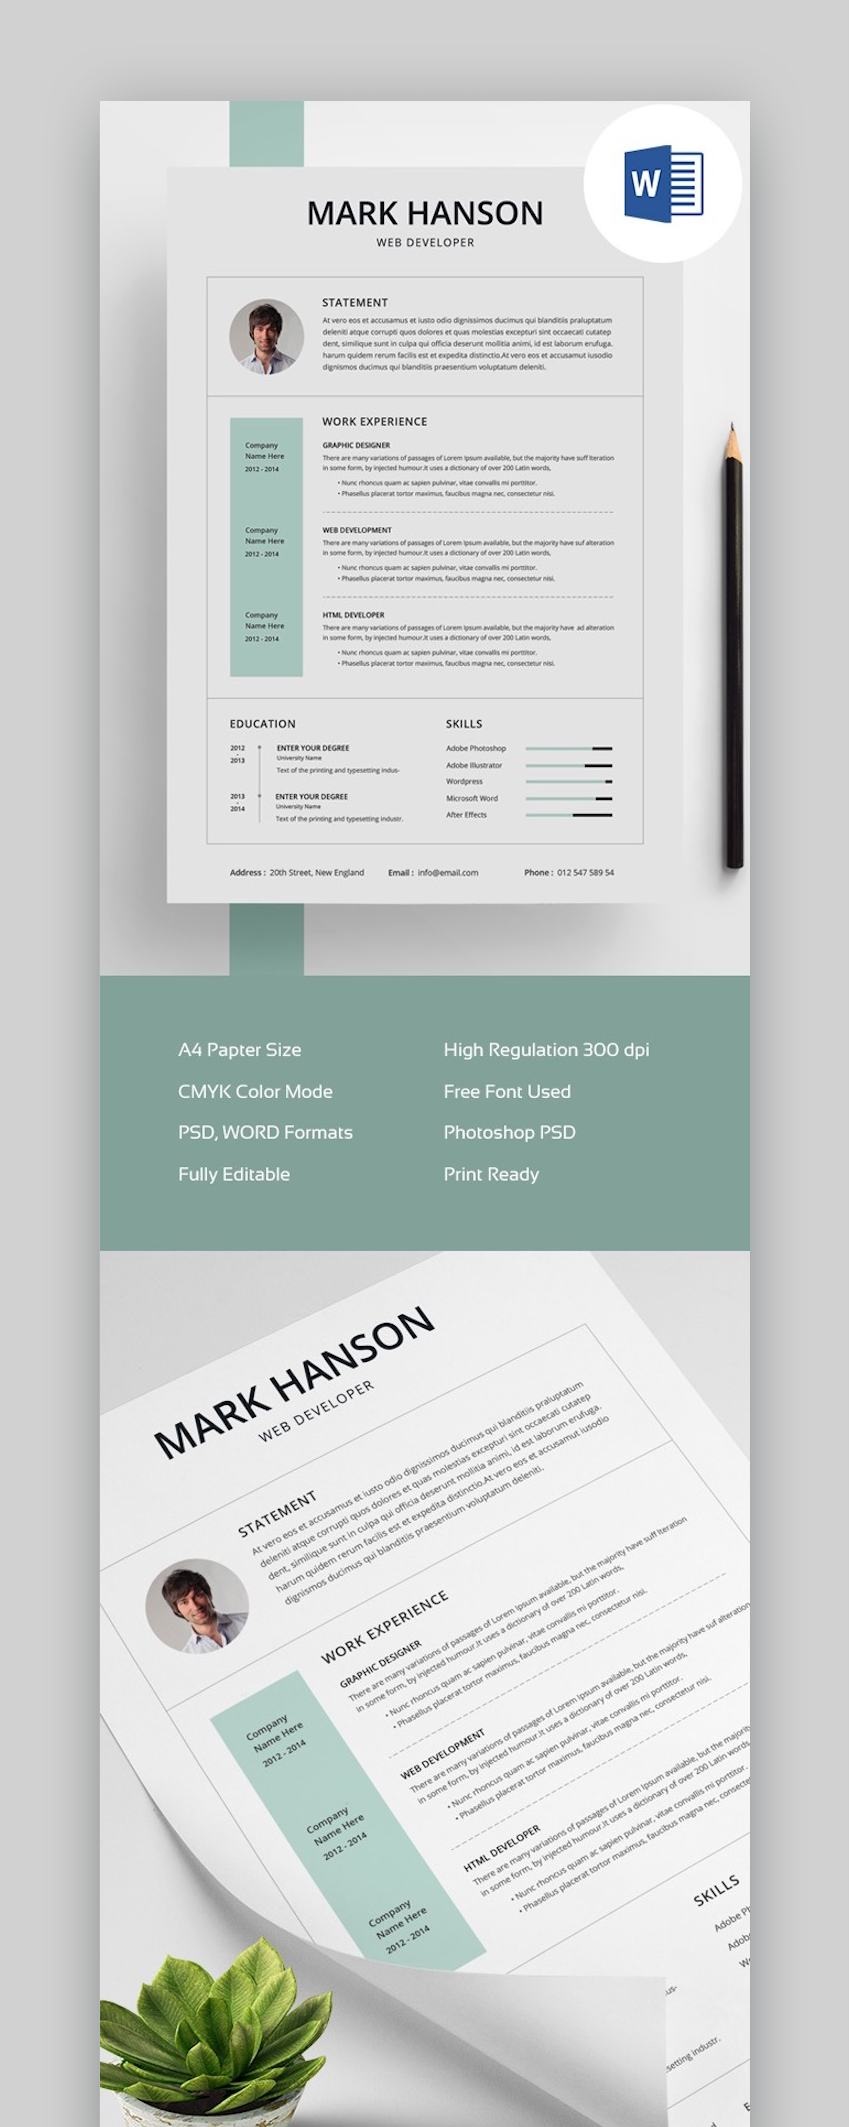 free creative resume templates word downloads for env clean template final communication Resume Free Creative Resume Templates Word Download